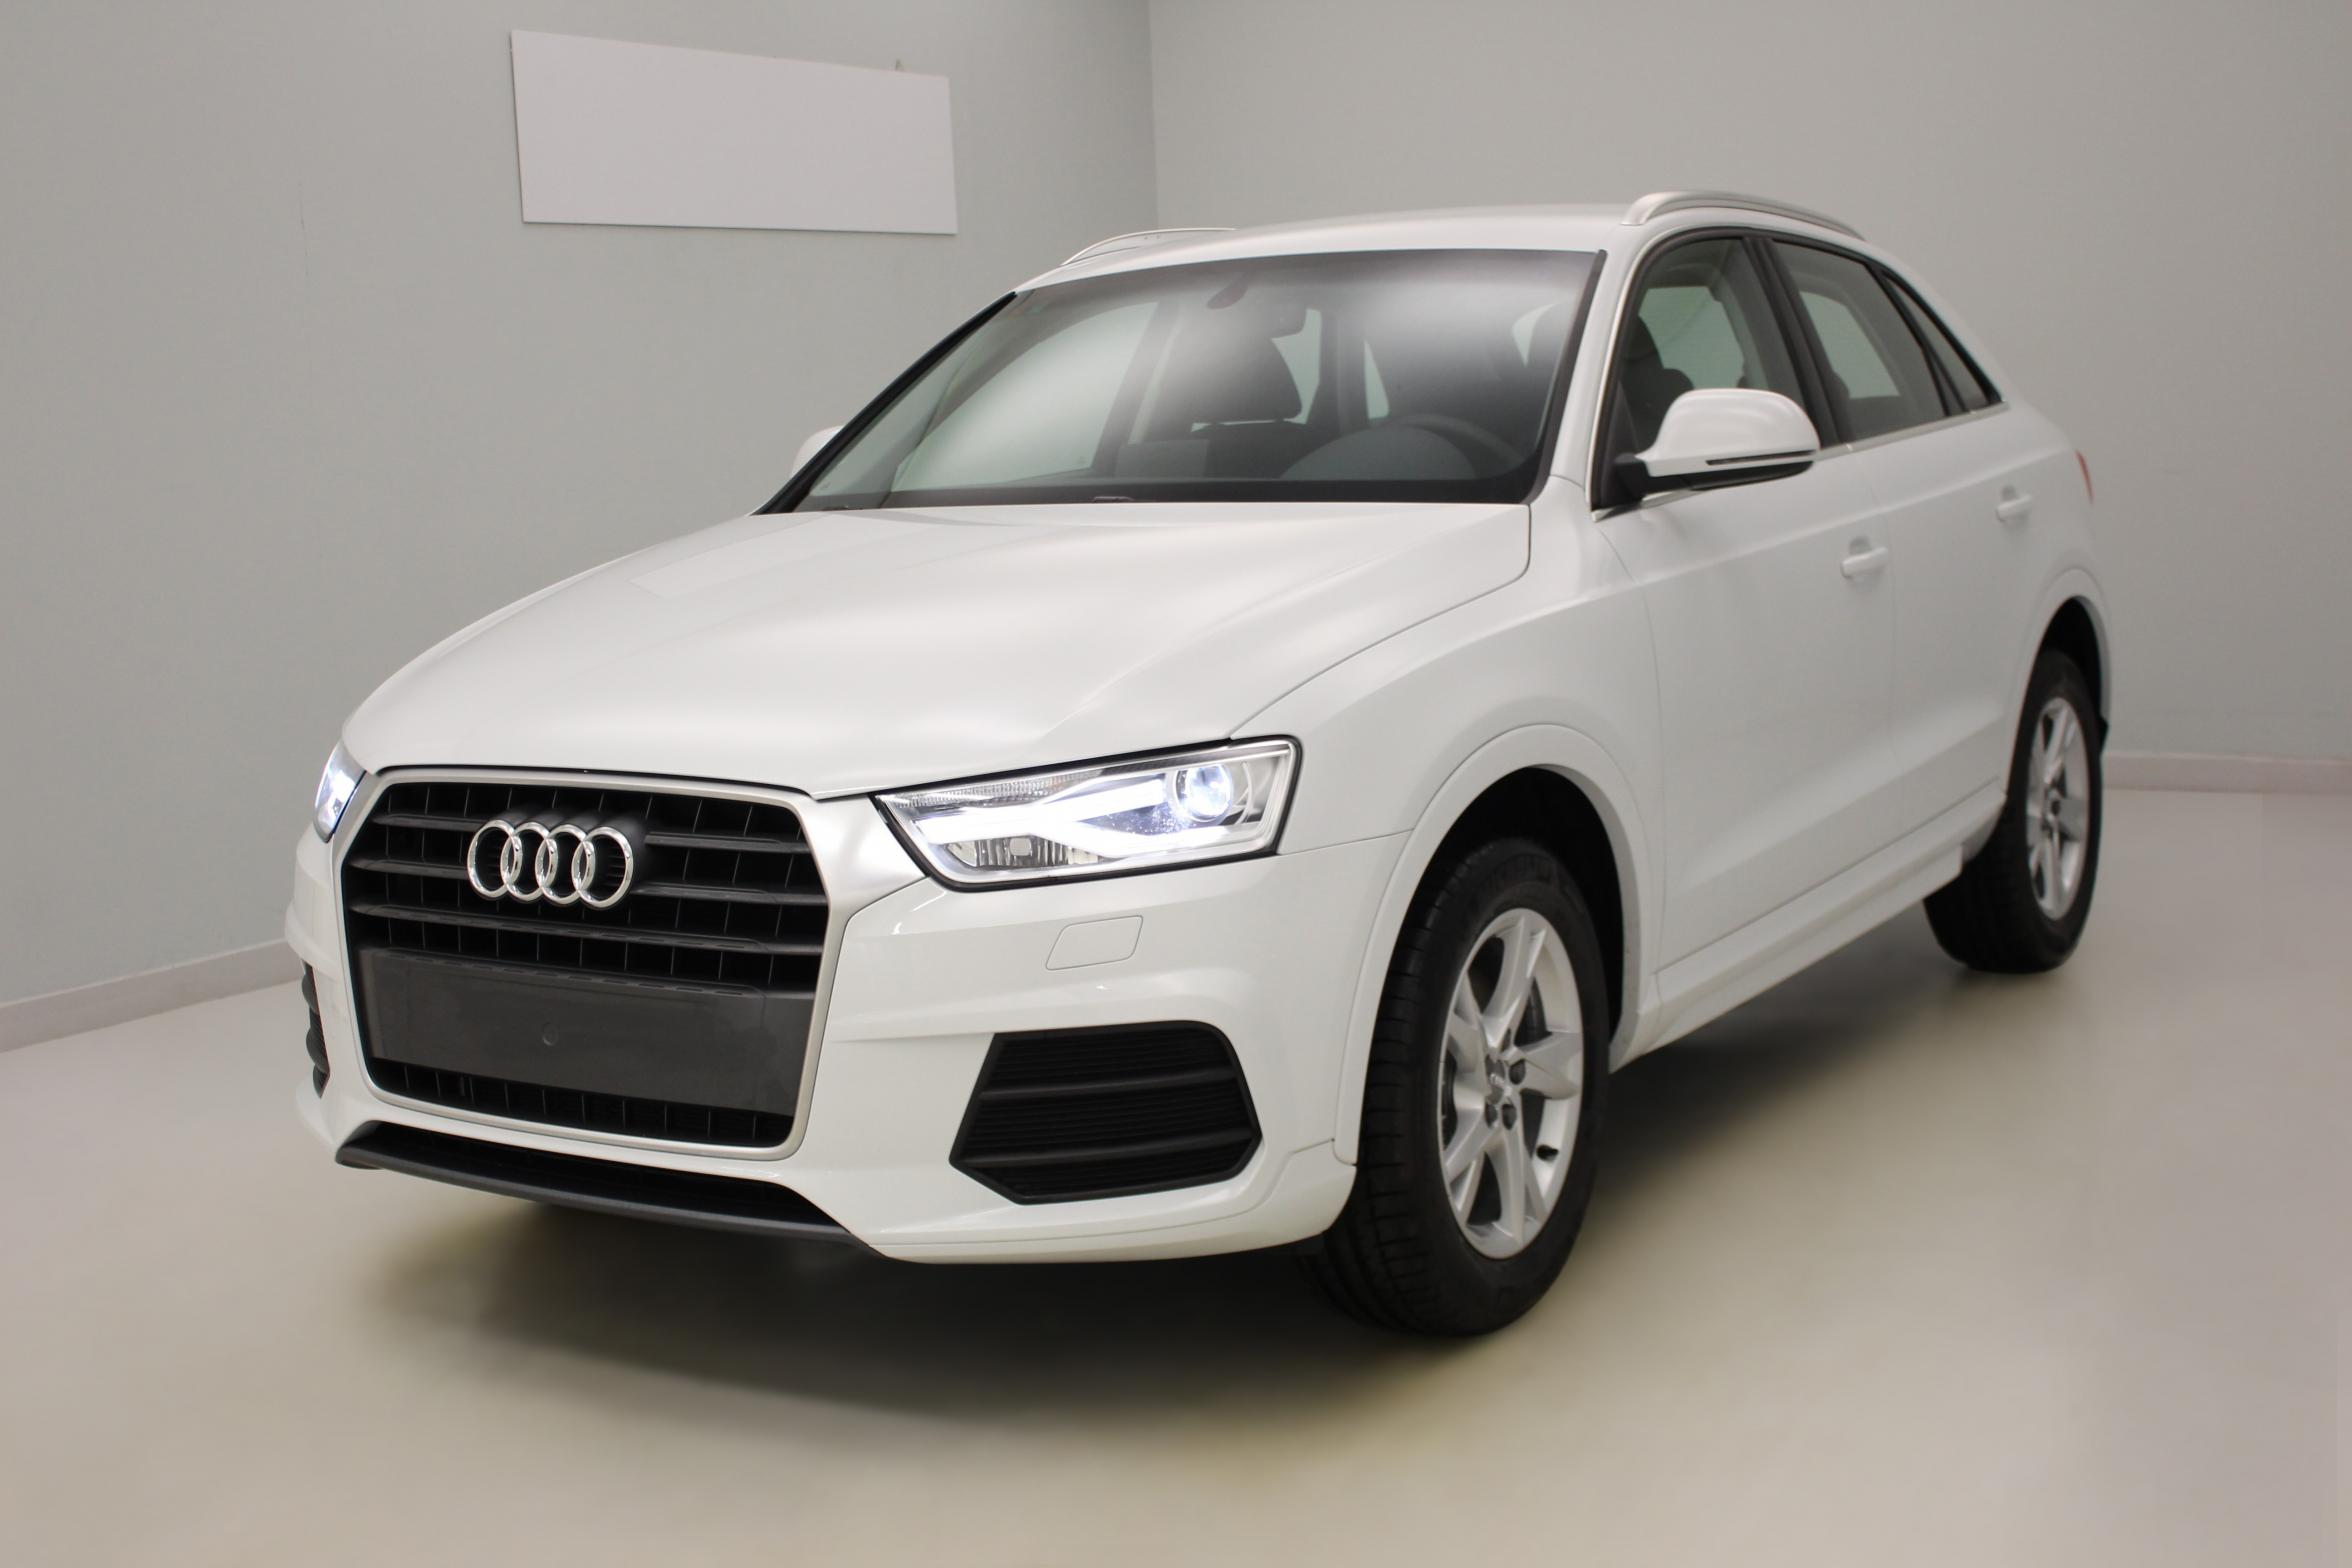 AUDI Q3 2.0 TDI Ultra 150 ch Ambiente Blanc Glacier + Pack navigation avec options